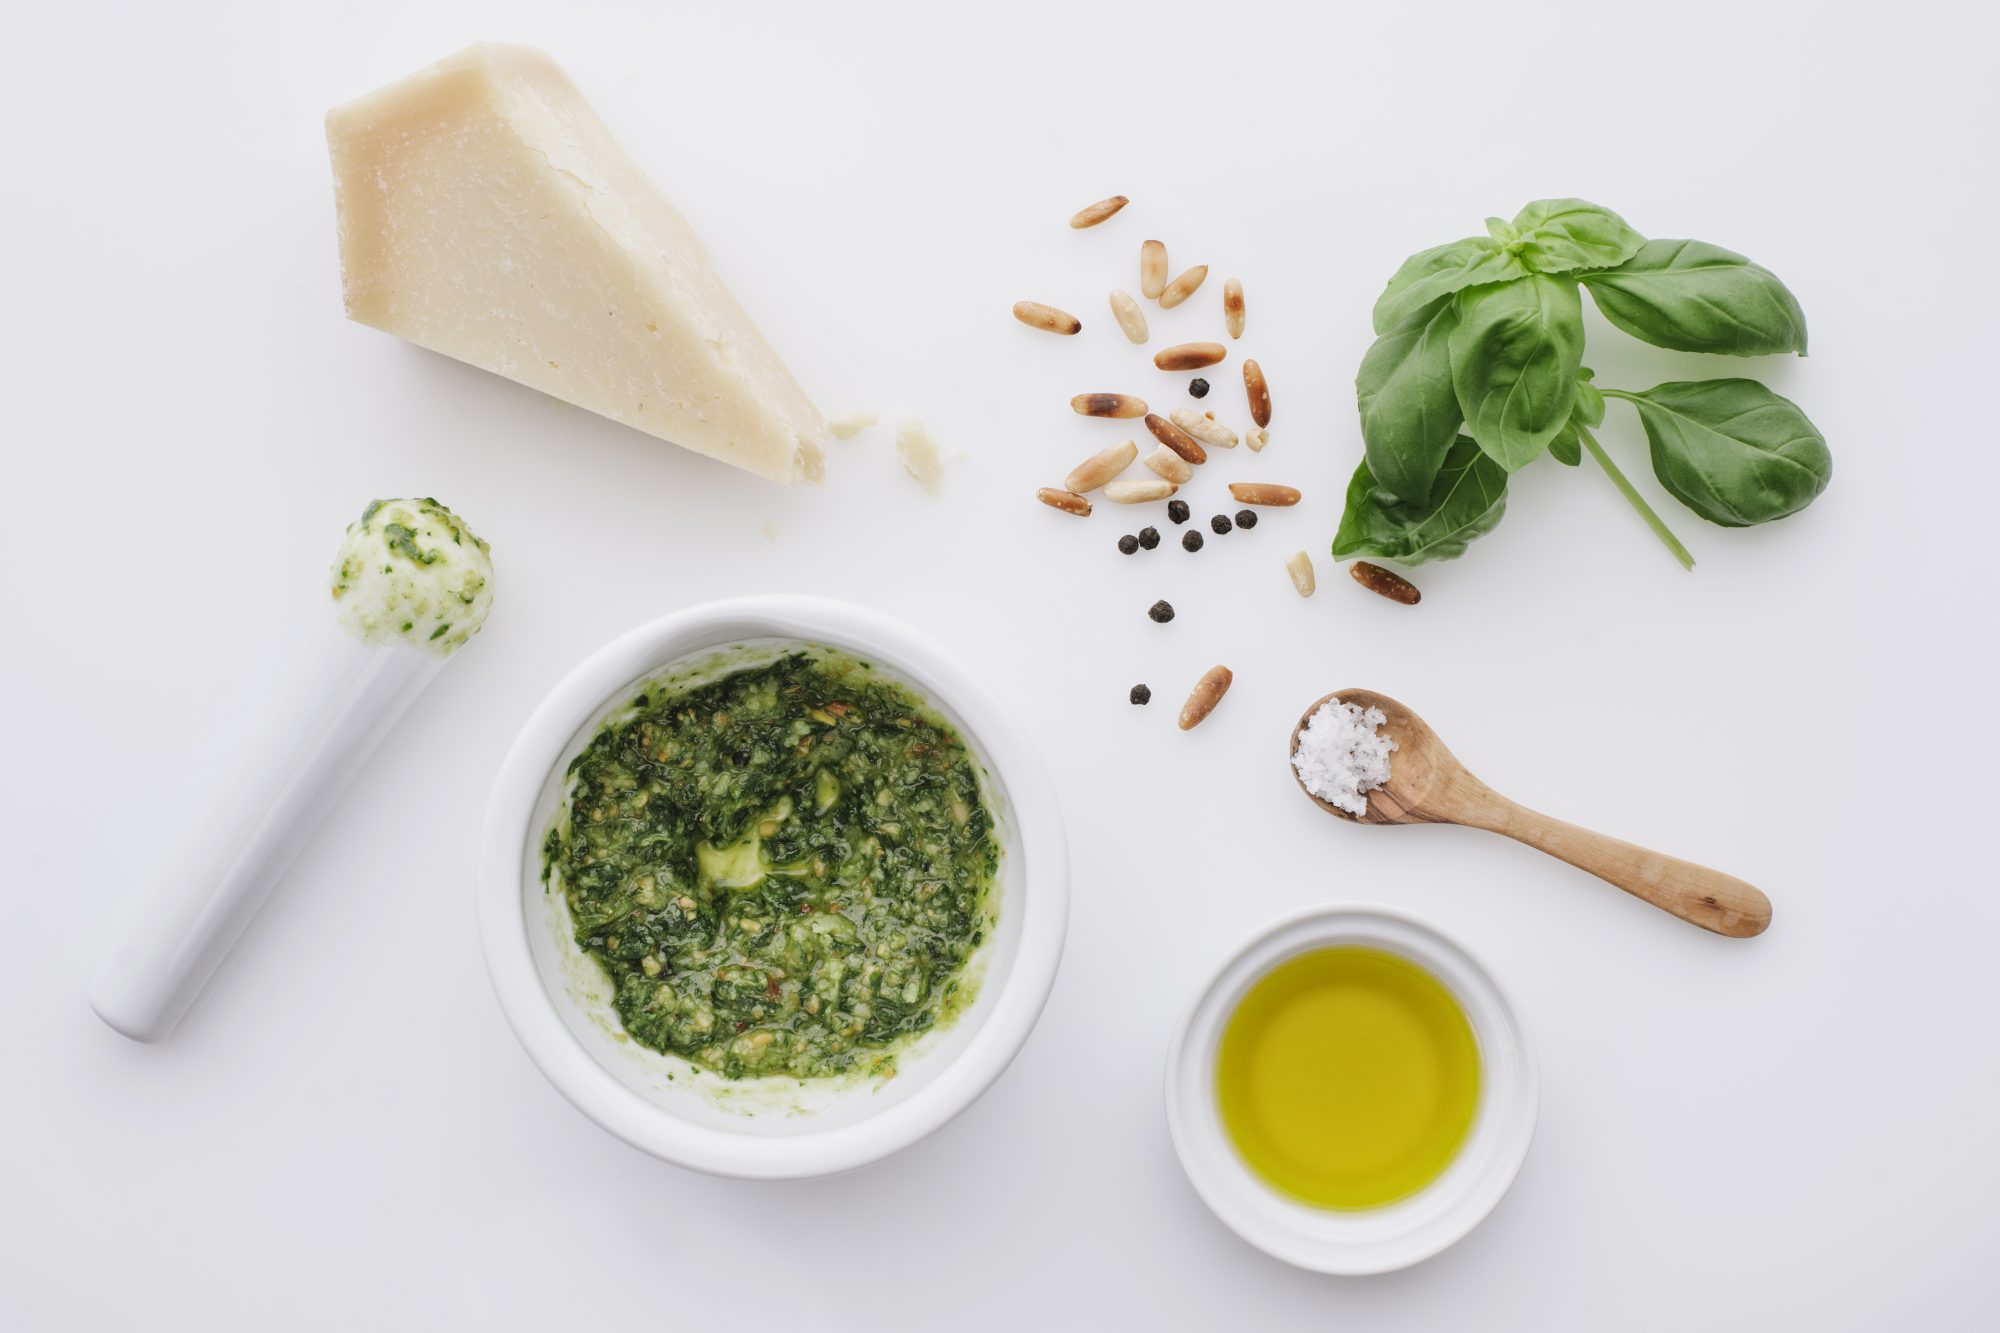 Ingredients for pesto on white ground